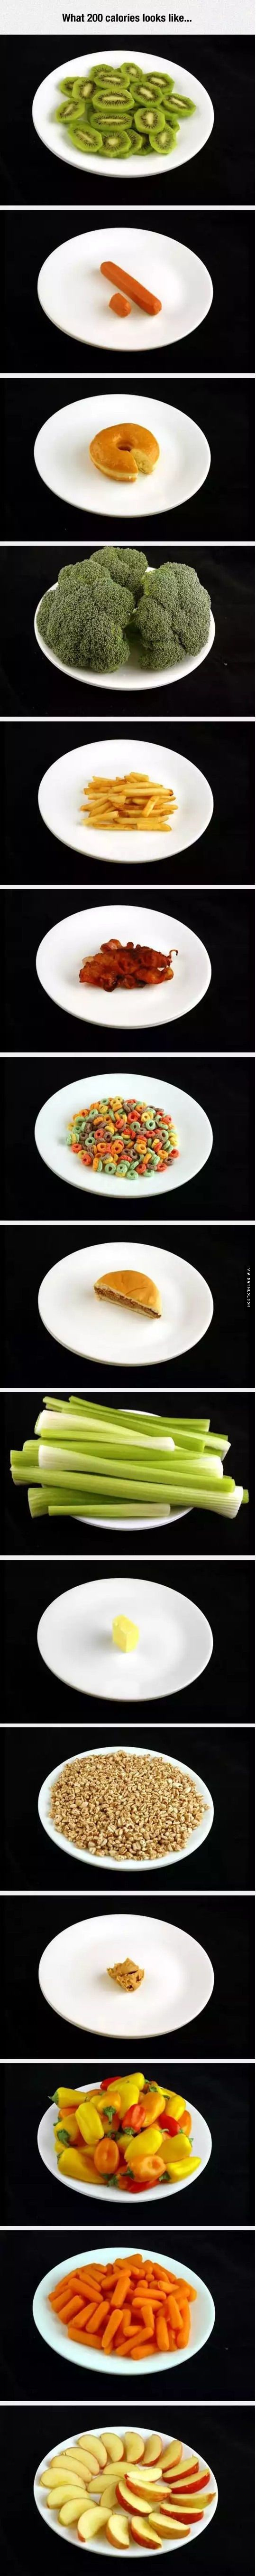 Funny Images of The Day - 31 Images